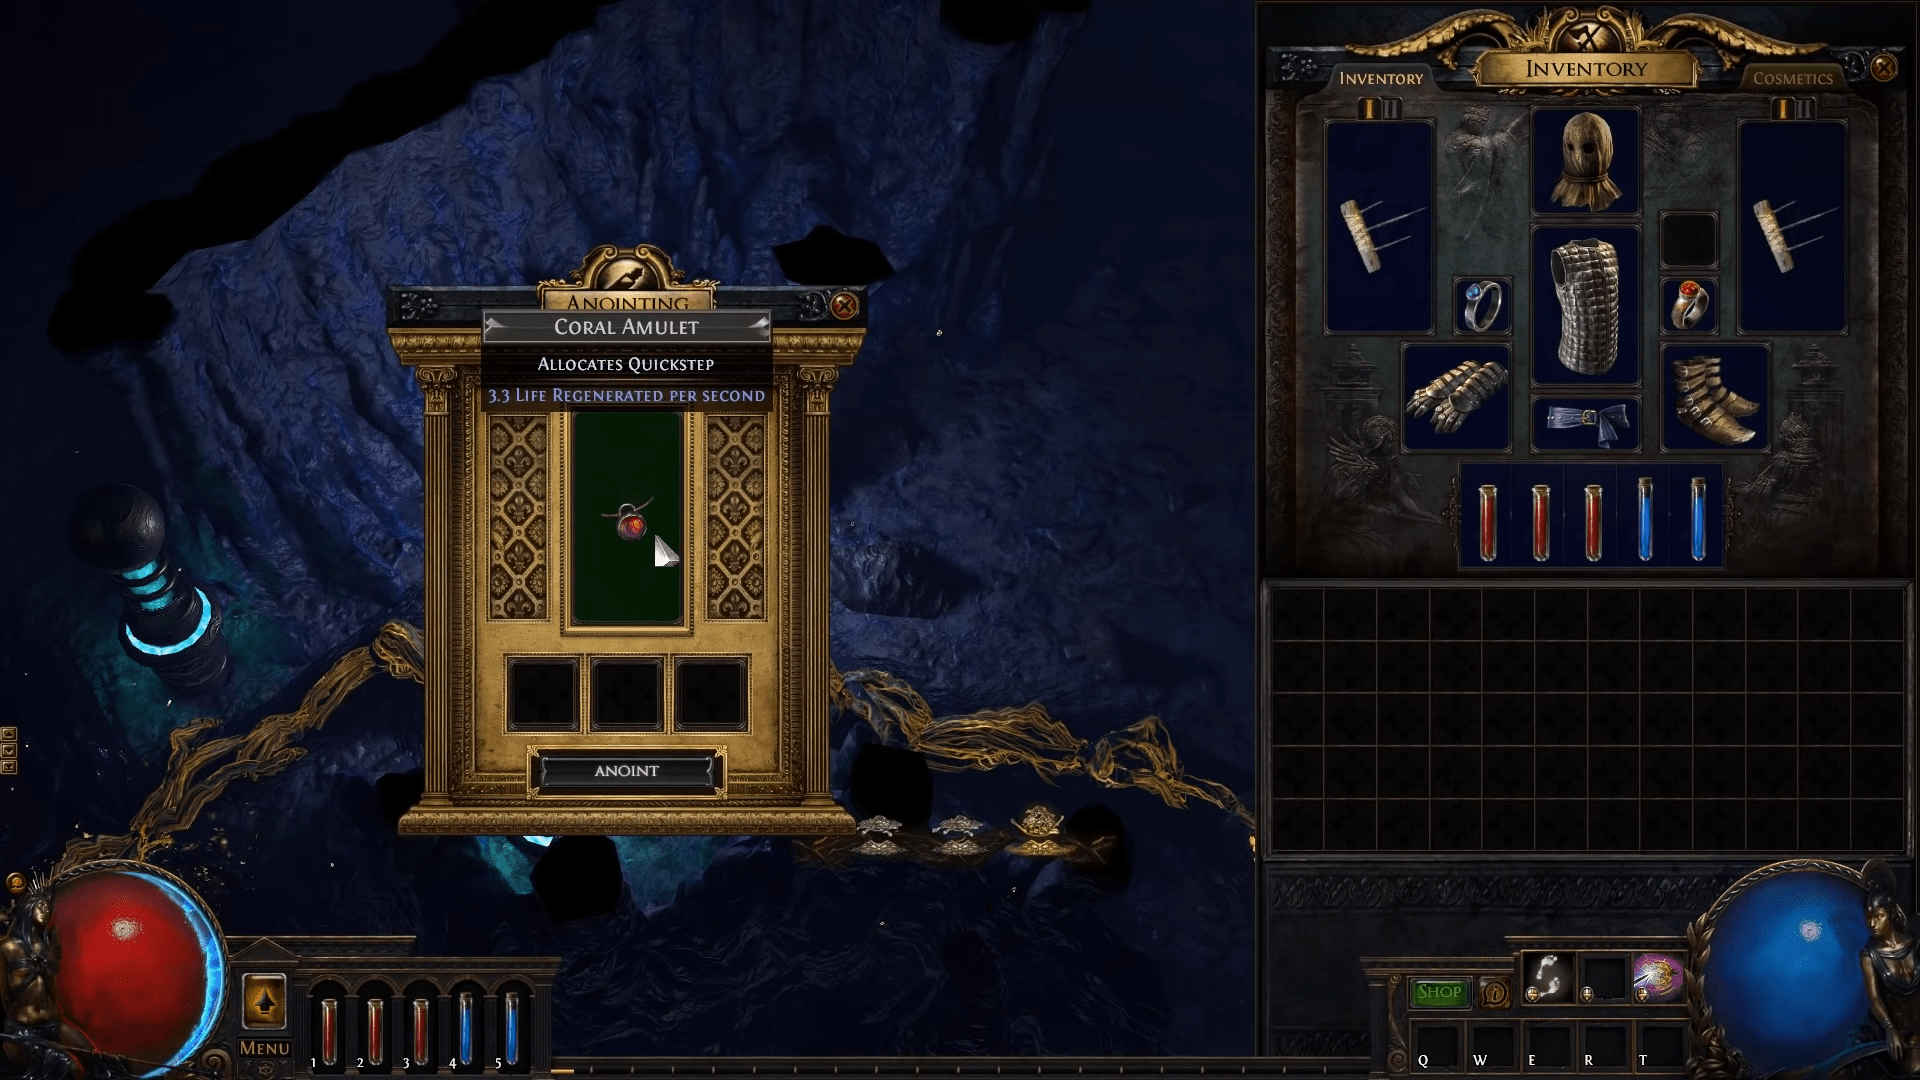 Upcoming Exilecon For Path Of Exile Will Show A Sneak Peek of Path of Exile 4.0.0 Due In December 2020